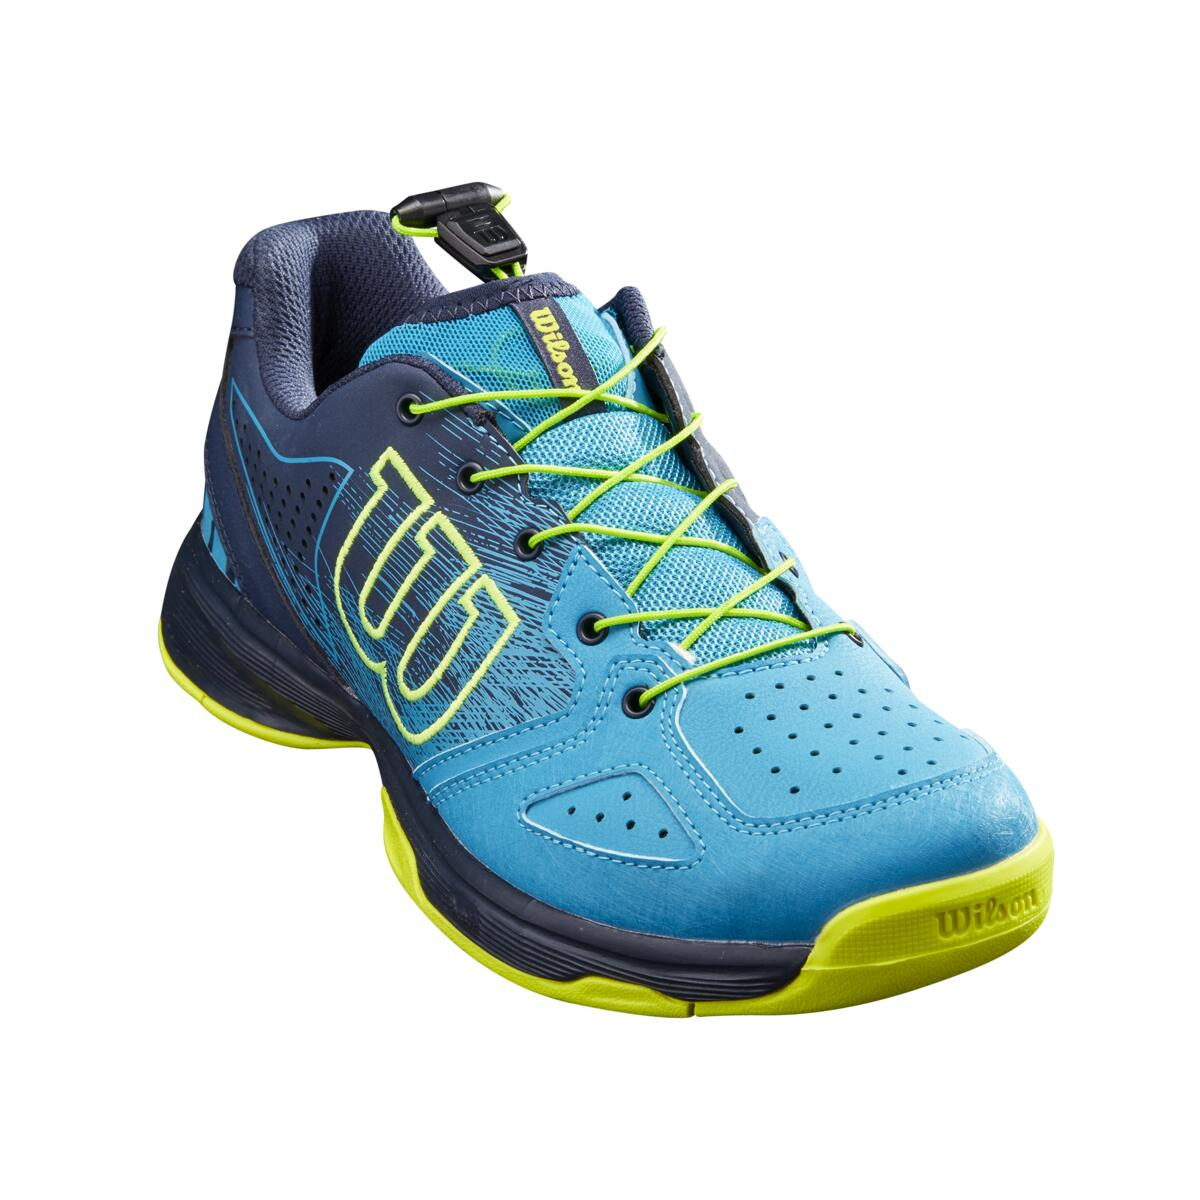 Wilson Kaos QL Junior Tennis Shoe – Barrier Reef/Navy Blazer/Lime Popsicle